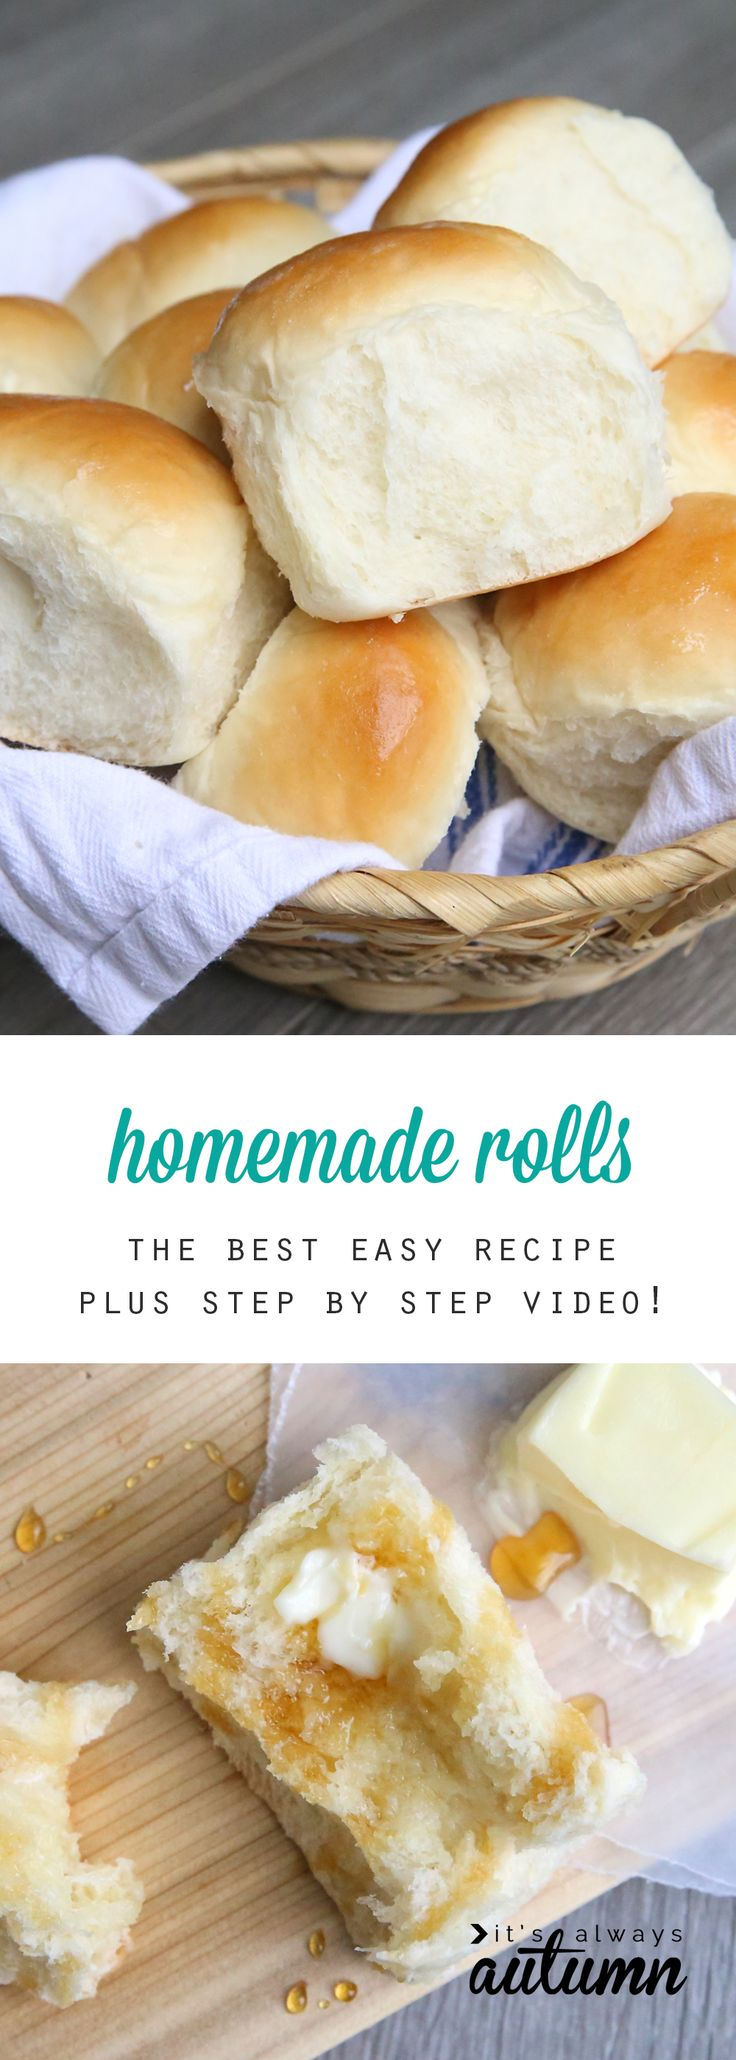 Best 25 a video ideas on pinterest having a baby video i want this is the best easy homemade dinner rolls recipe and theres even a video tutorial forumfinder Choice Image